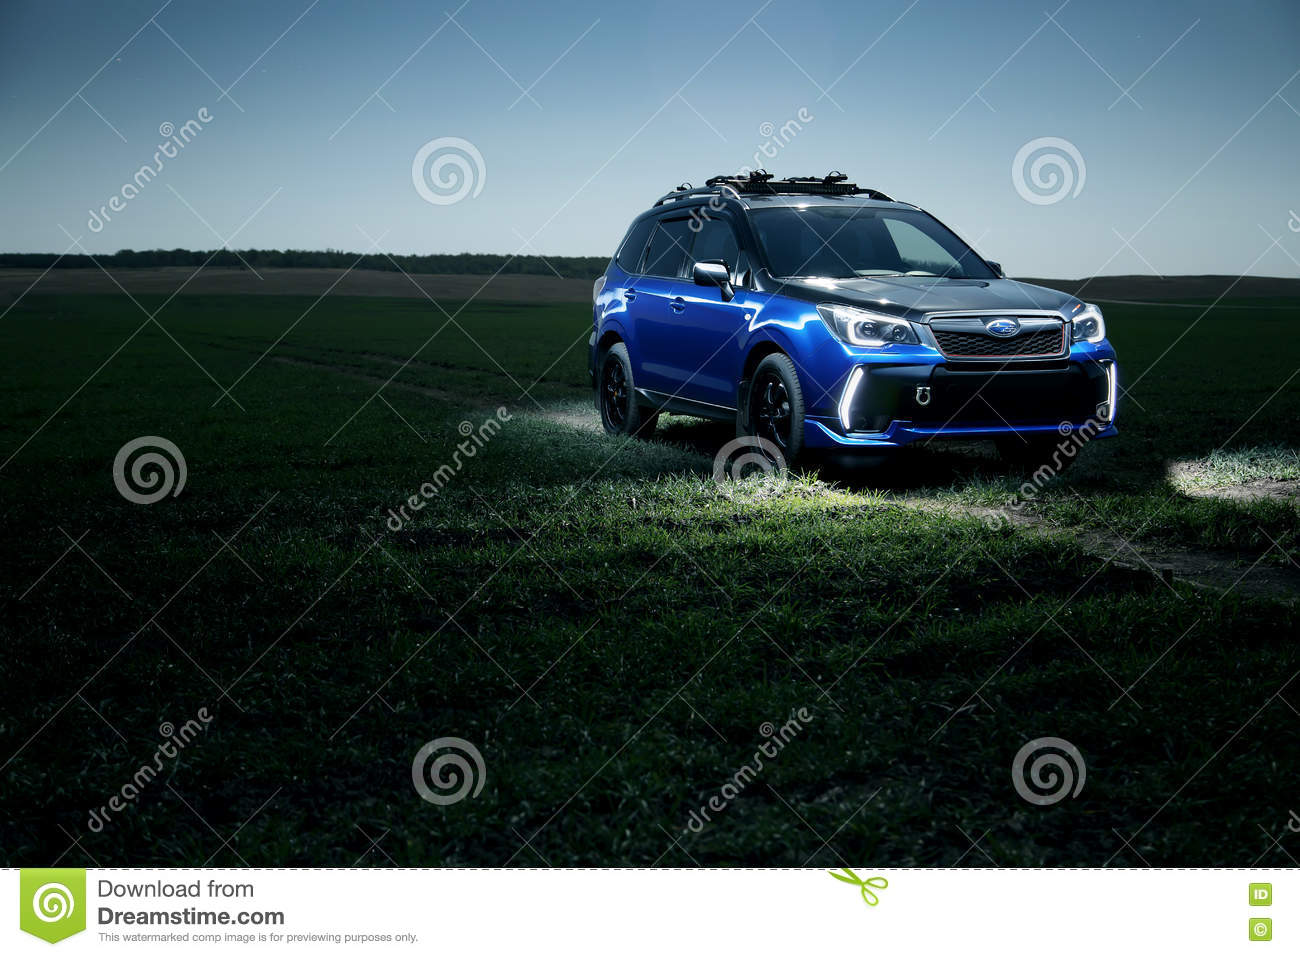 car subaru forester stand at countryside off road on green field at night editorial photo. Black Bedroom Furniture Sets. Home Design Ideas